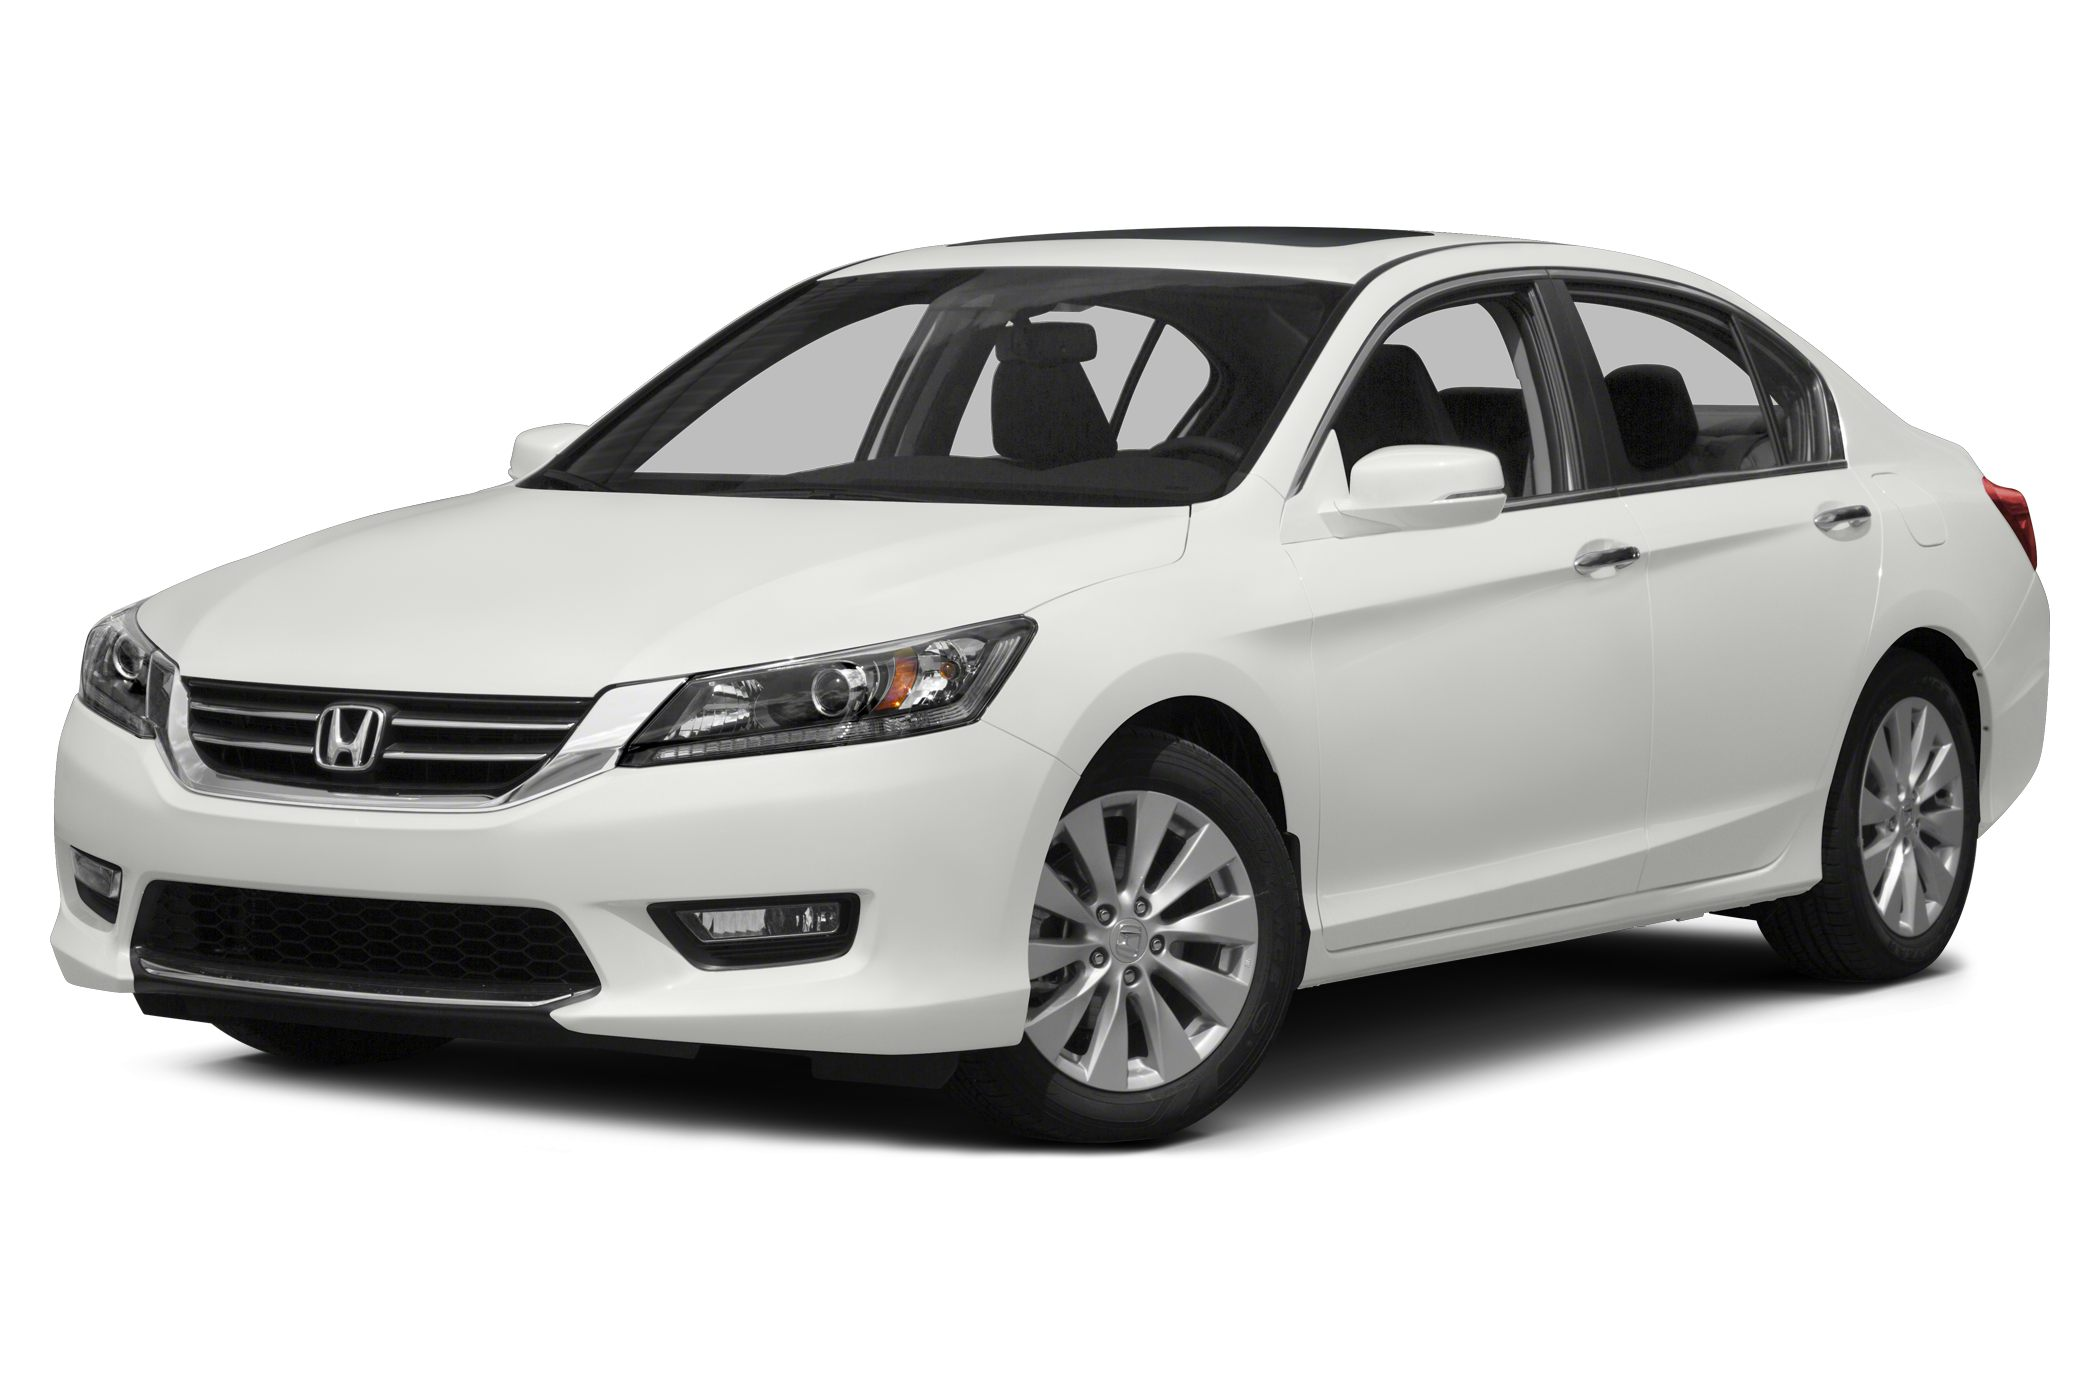 2013 Honda Accord EX-L V6 1 OWNERMUST SEEFULLY LOADEDNAVIGATIONBACK UP CAMPUSH START